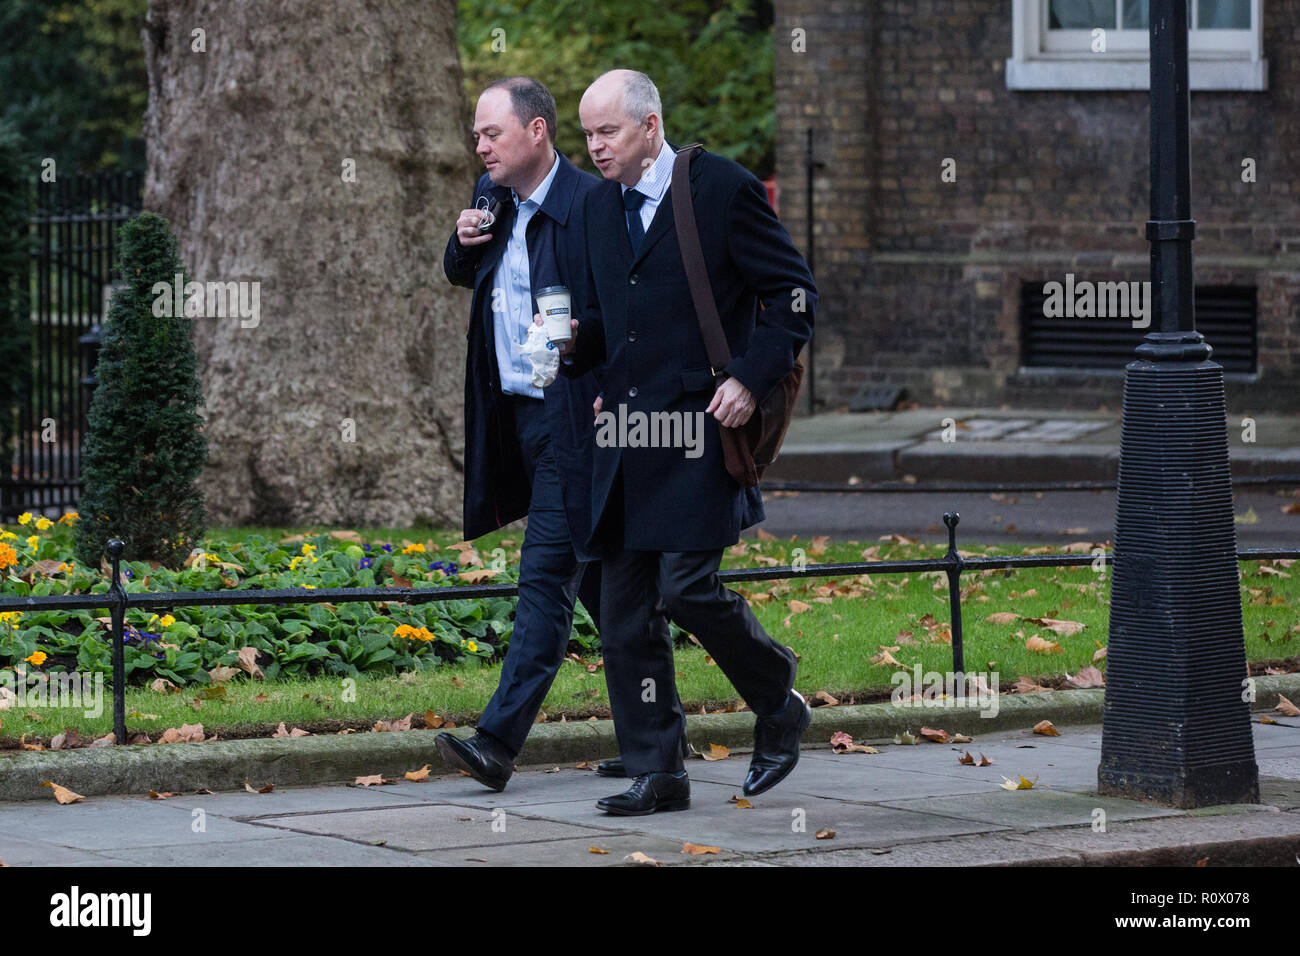 London, UK. 6th November, 2018. James Slack, No. 10 official spokesman, and Robbie Gibb, director of communications, arrive at 10 Downing Street befor - Stock Image